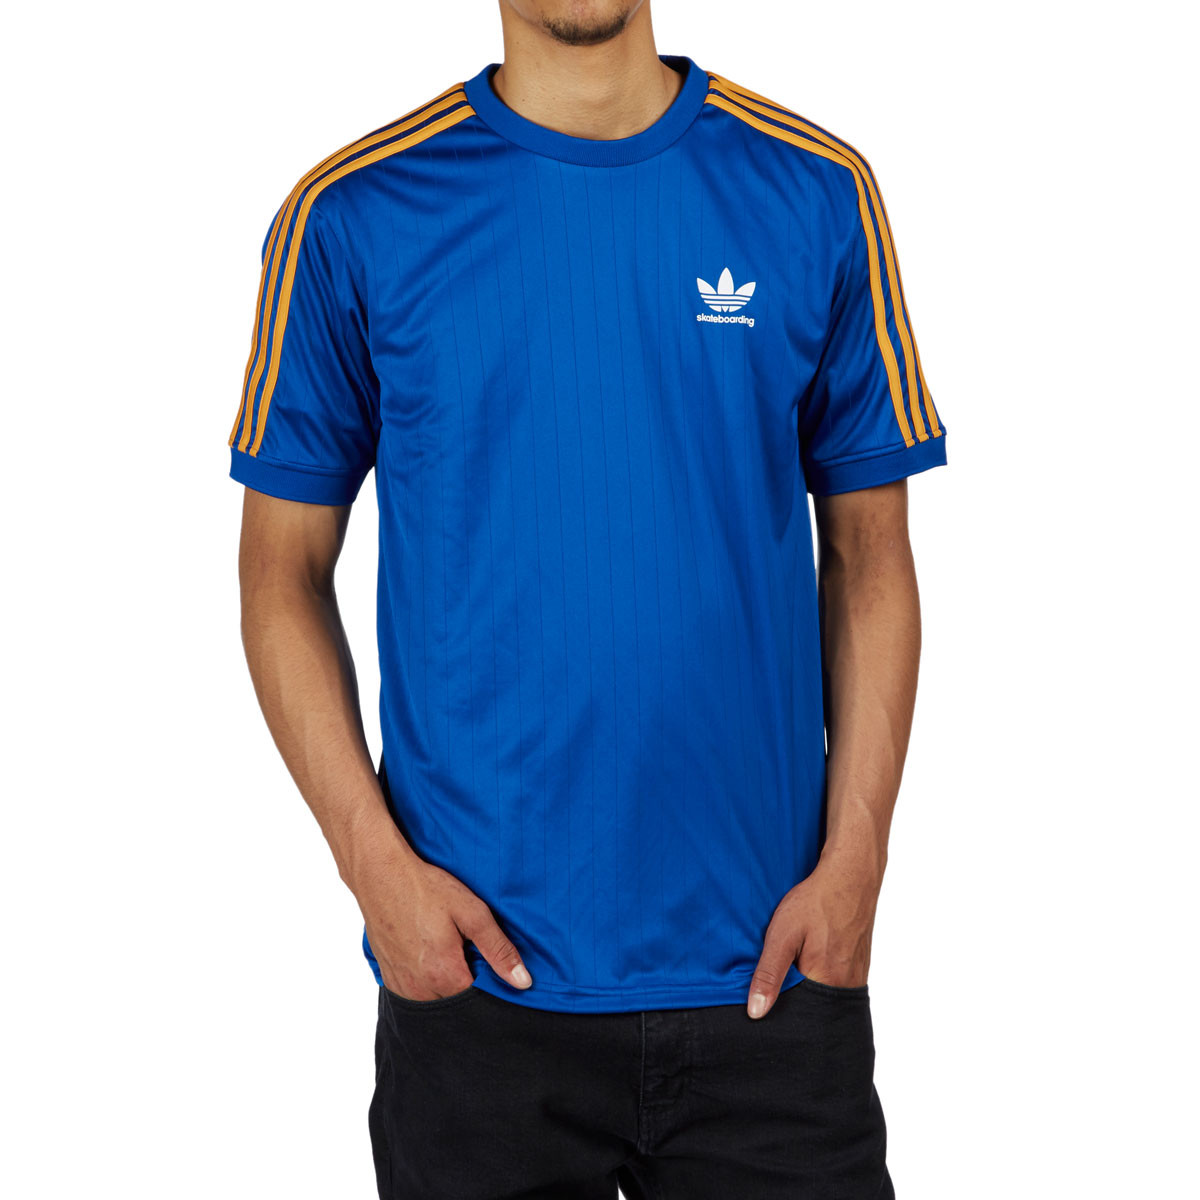 8585b87ee Adidas Clima Club Jersey - Collegiate Royal/Tactile Yellow